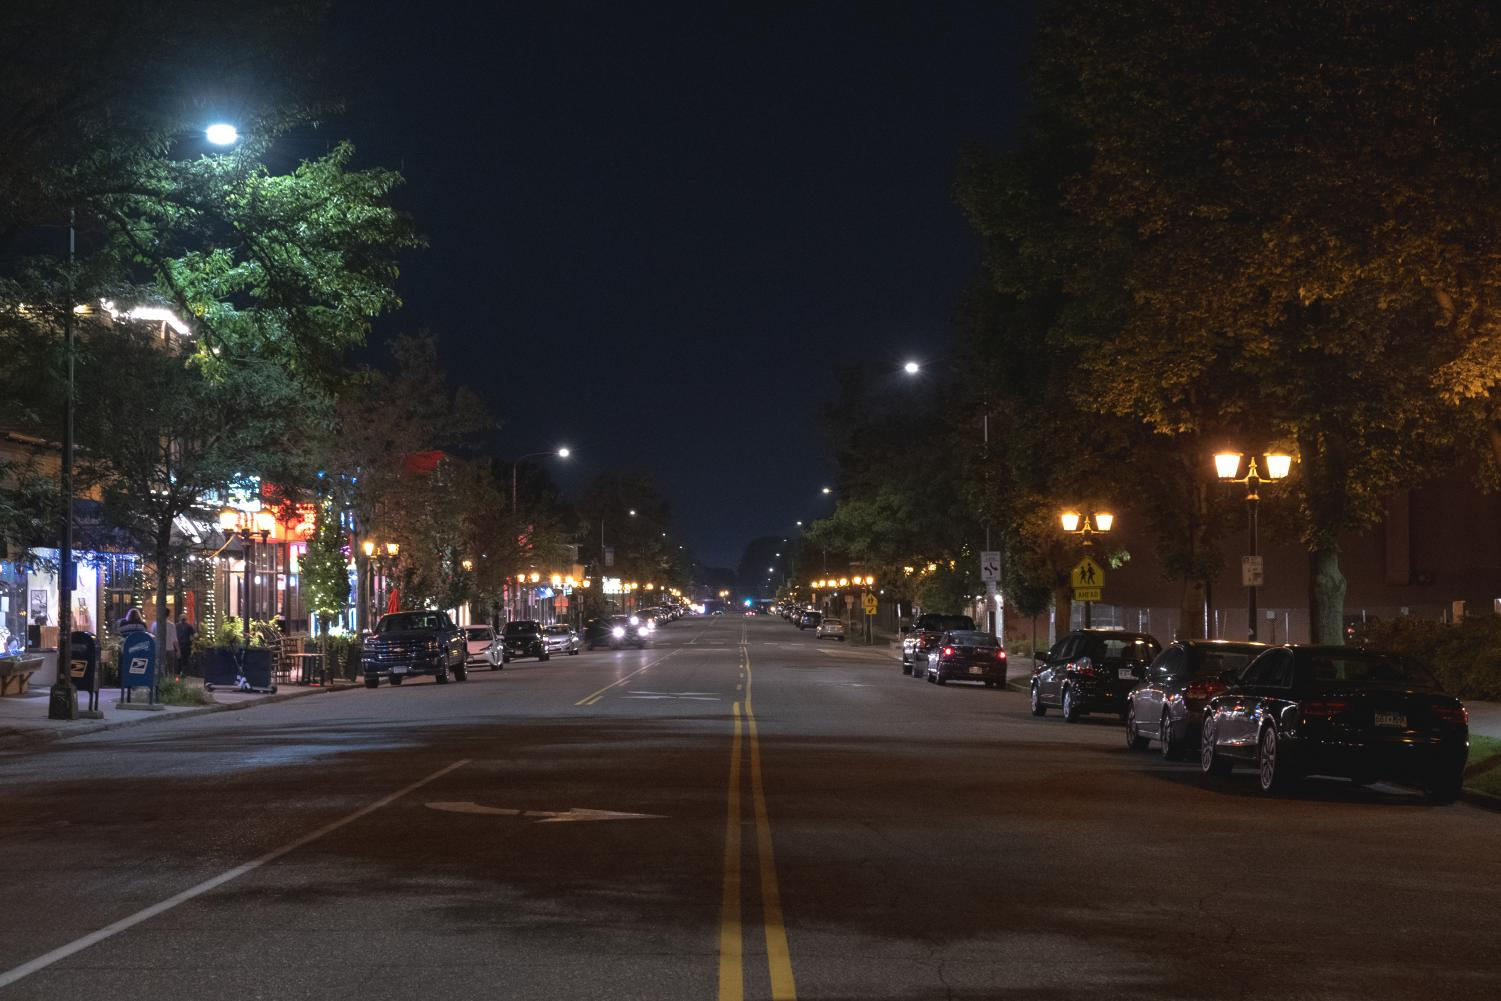 Grand Avenue at night. Photo by Kori Suzuki '21.